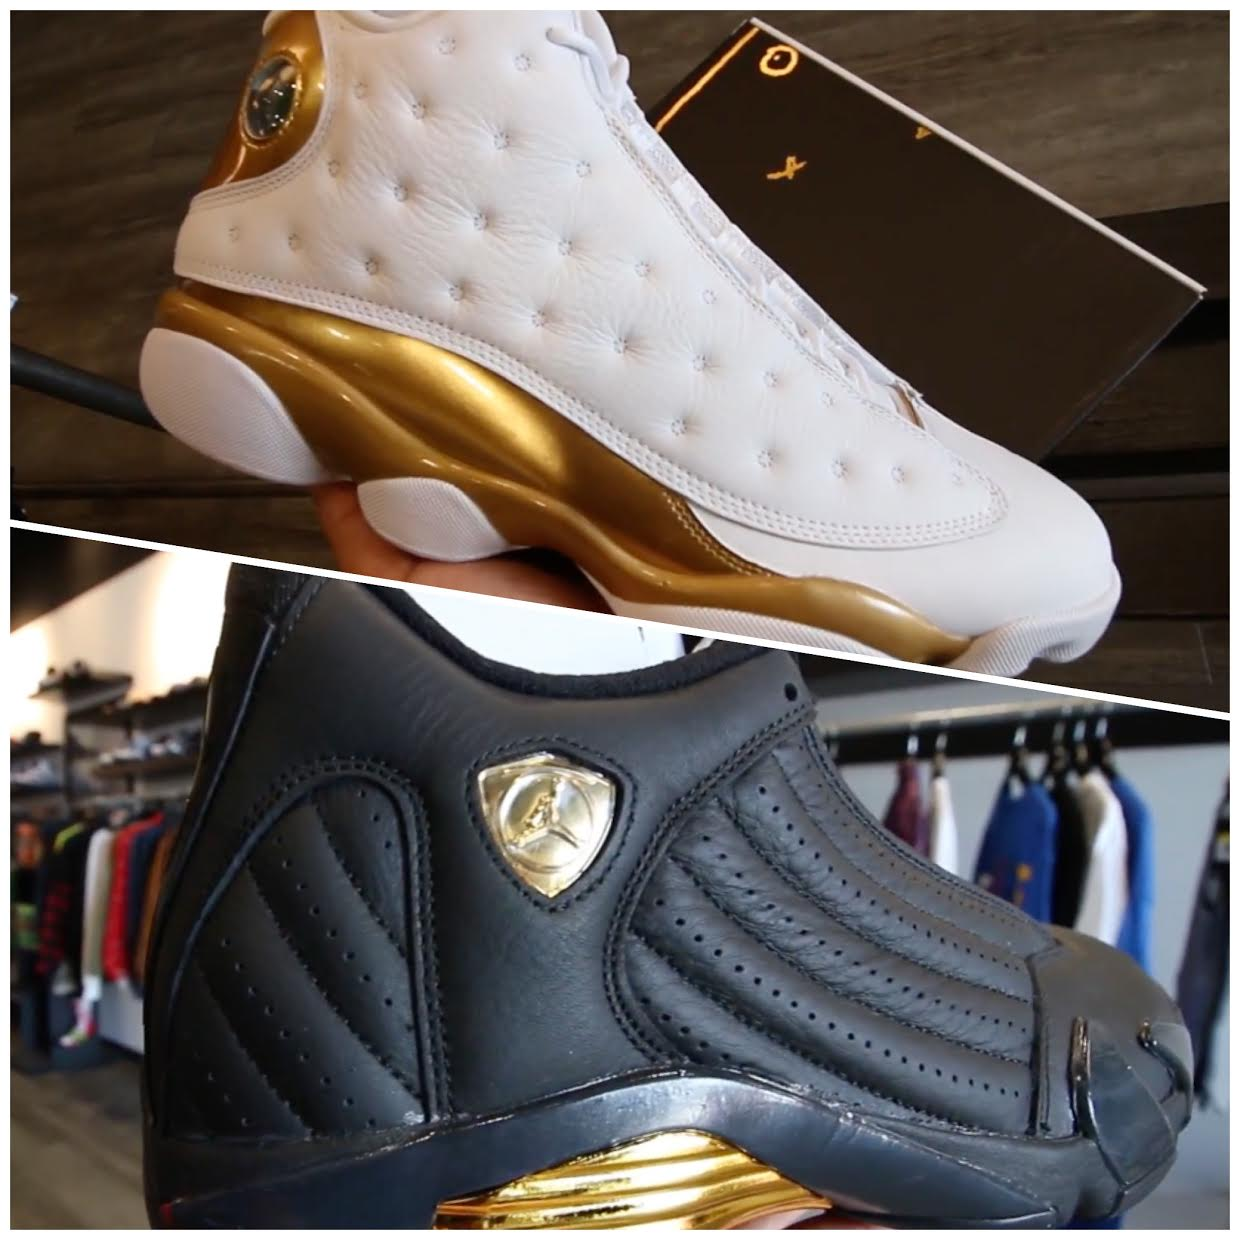 AirJordan DMP 13:14 Pack | Detailed Look and Review